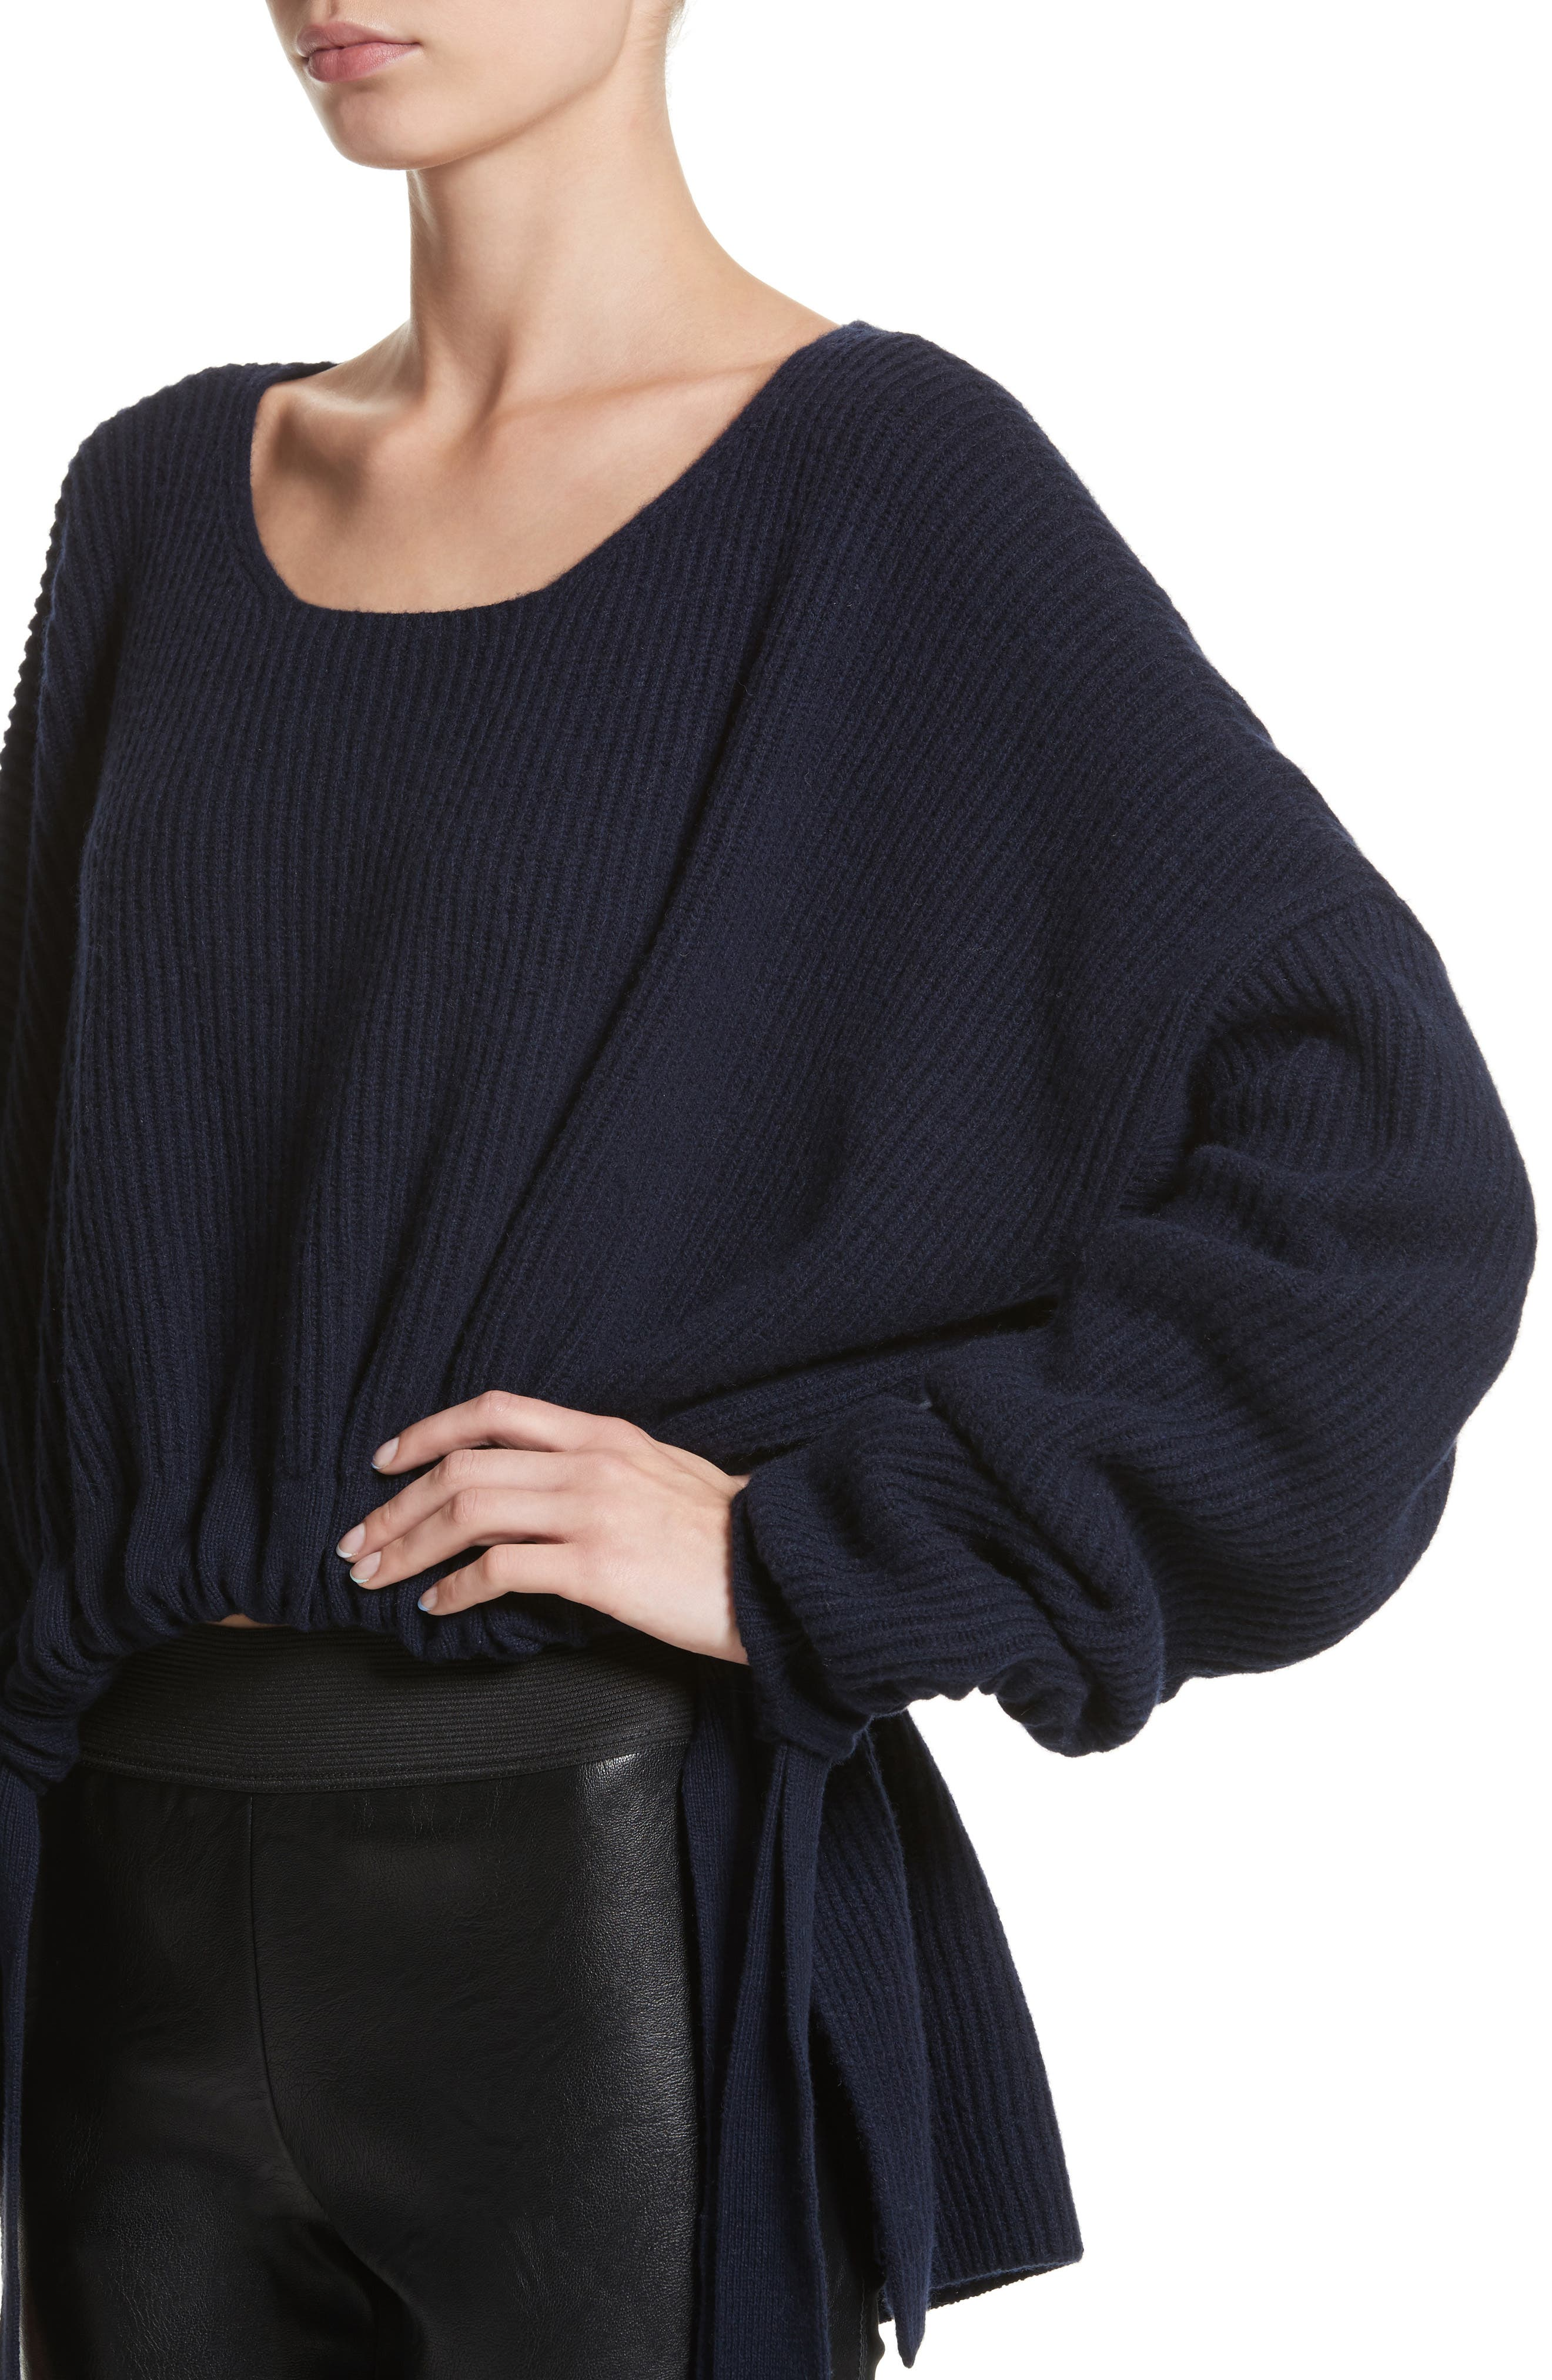 Gathered Cashmere & Wool Sweater,                             Alternate thumbnail 4, color,                             001